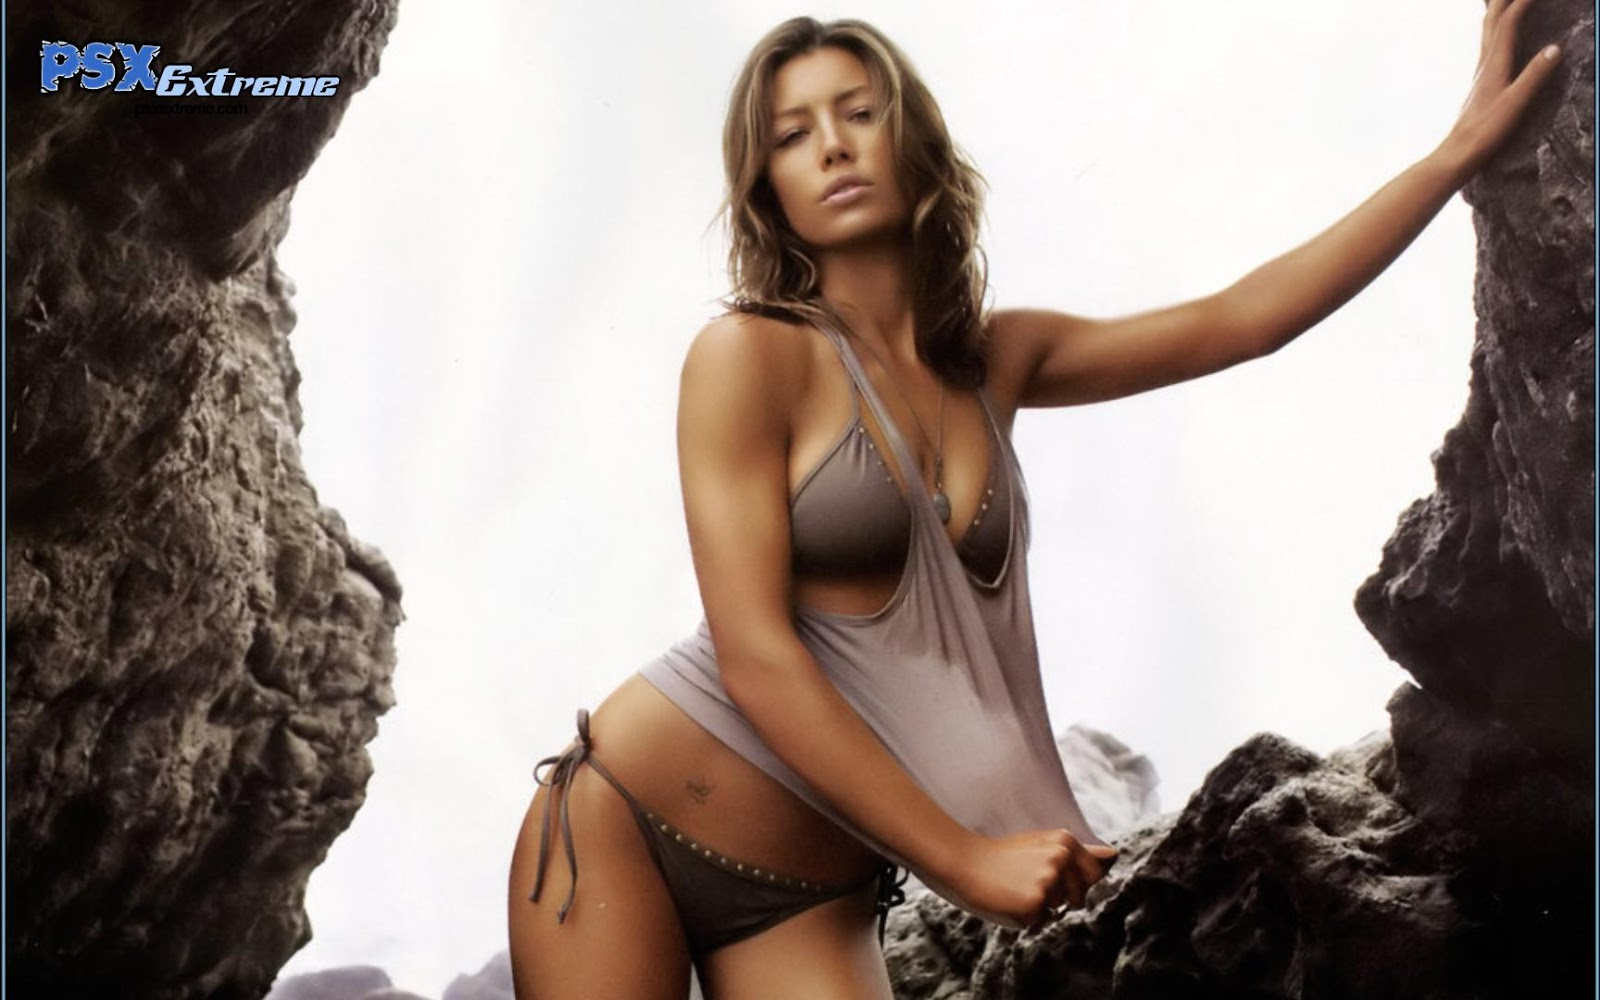 jessica biel background - photo #23